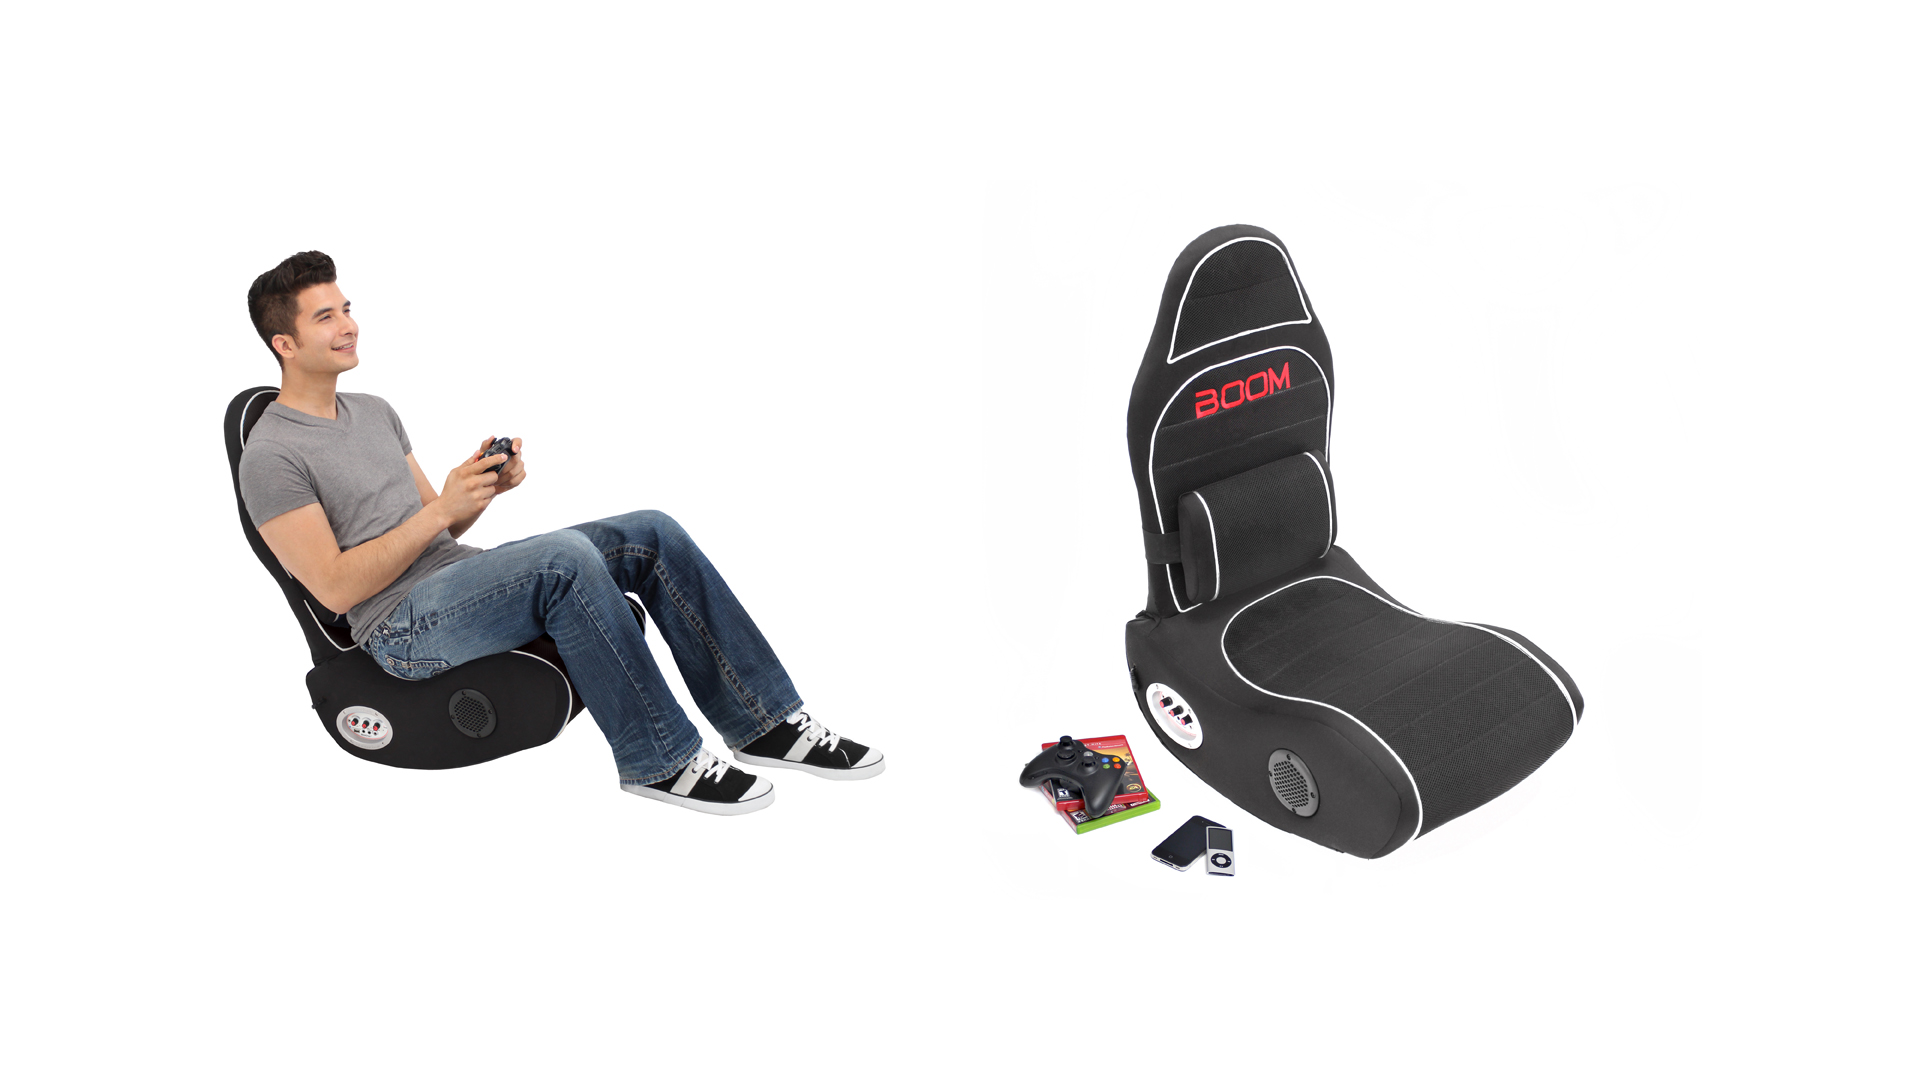 boomchair release new brk gaming chair range bc gb